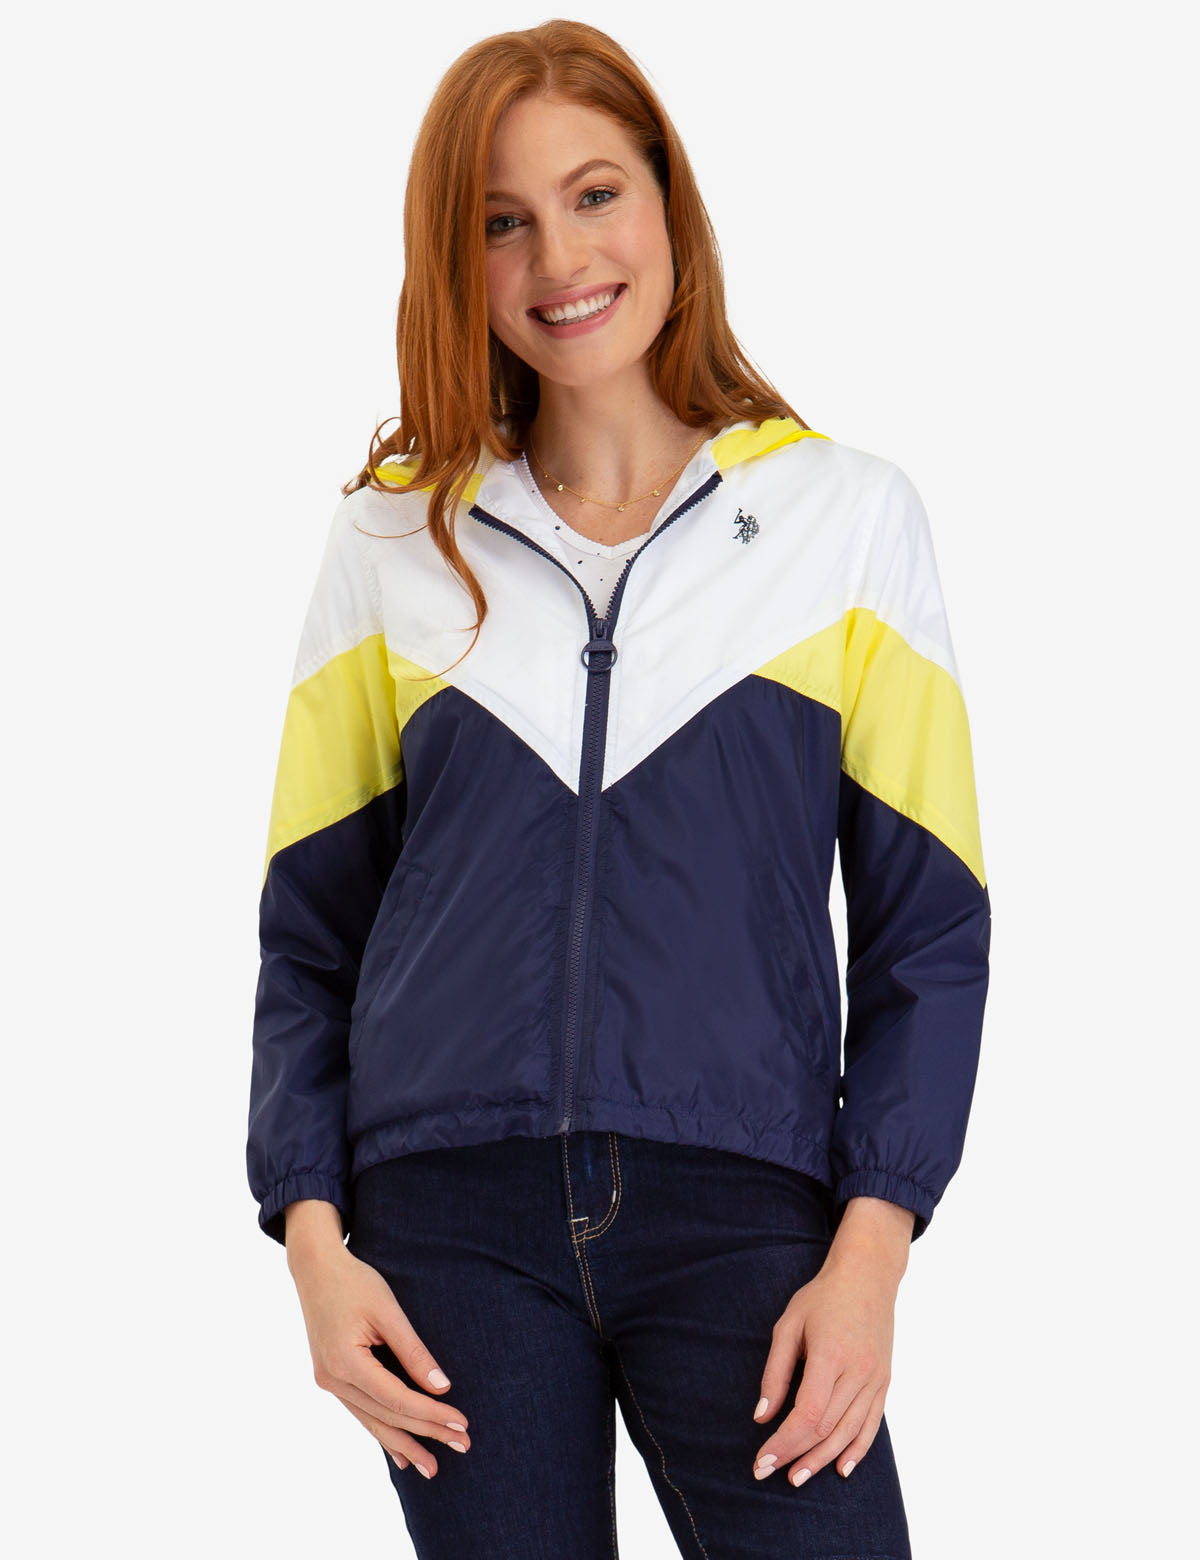 COLORLOCK WINDBREAKER - U.S. Polo Assn.